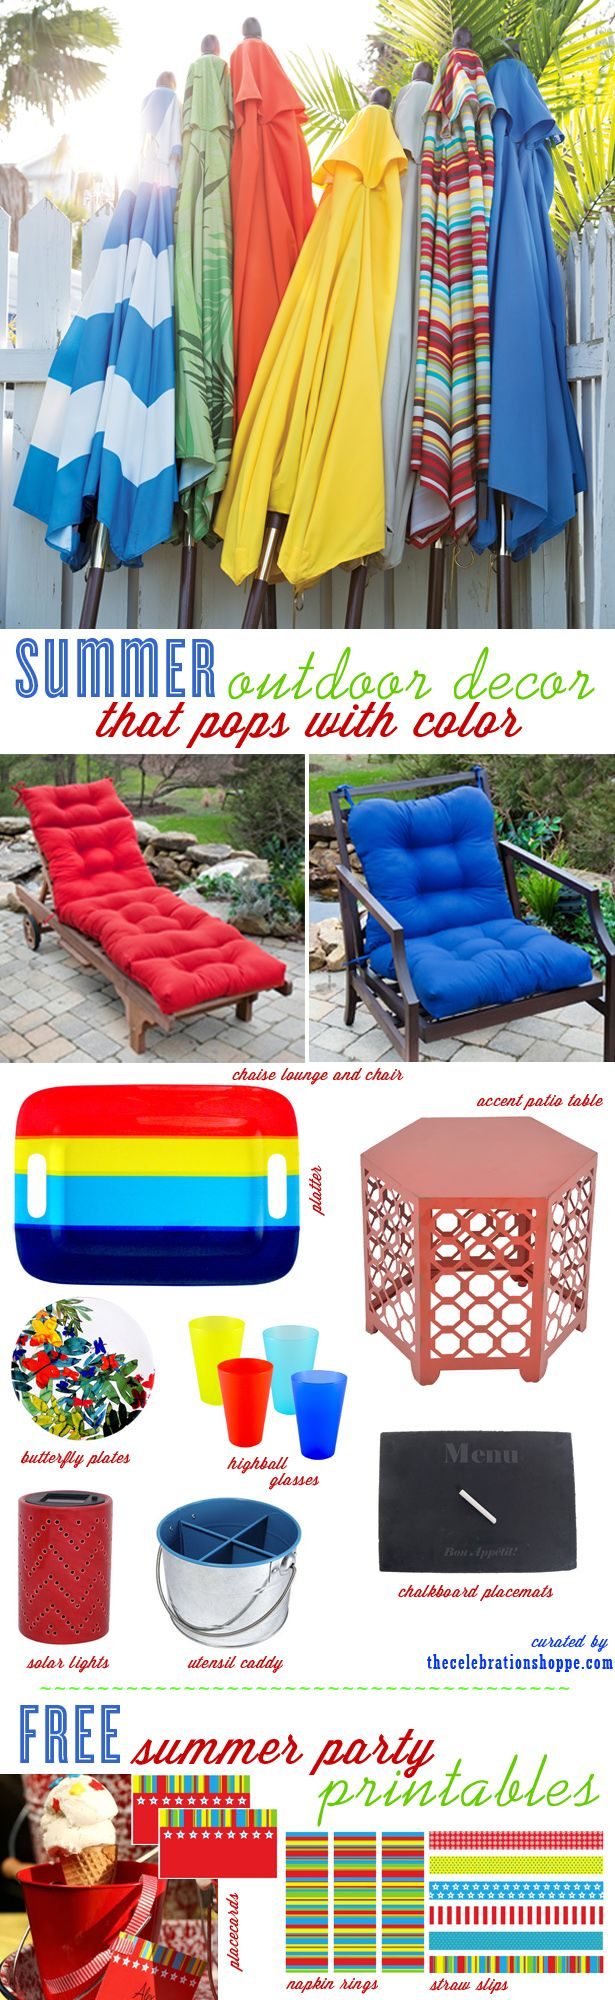 Outdoor Furniture {red, White And Blue